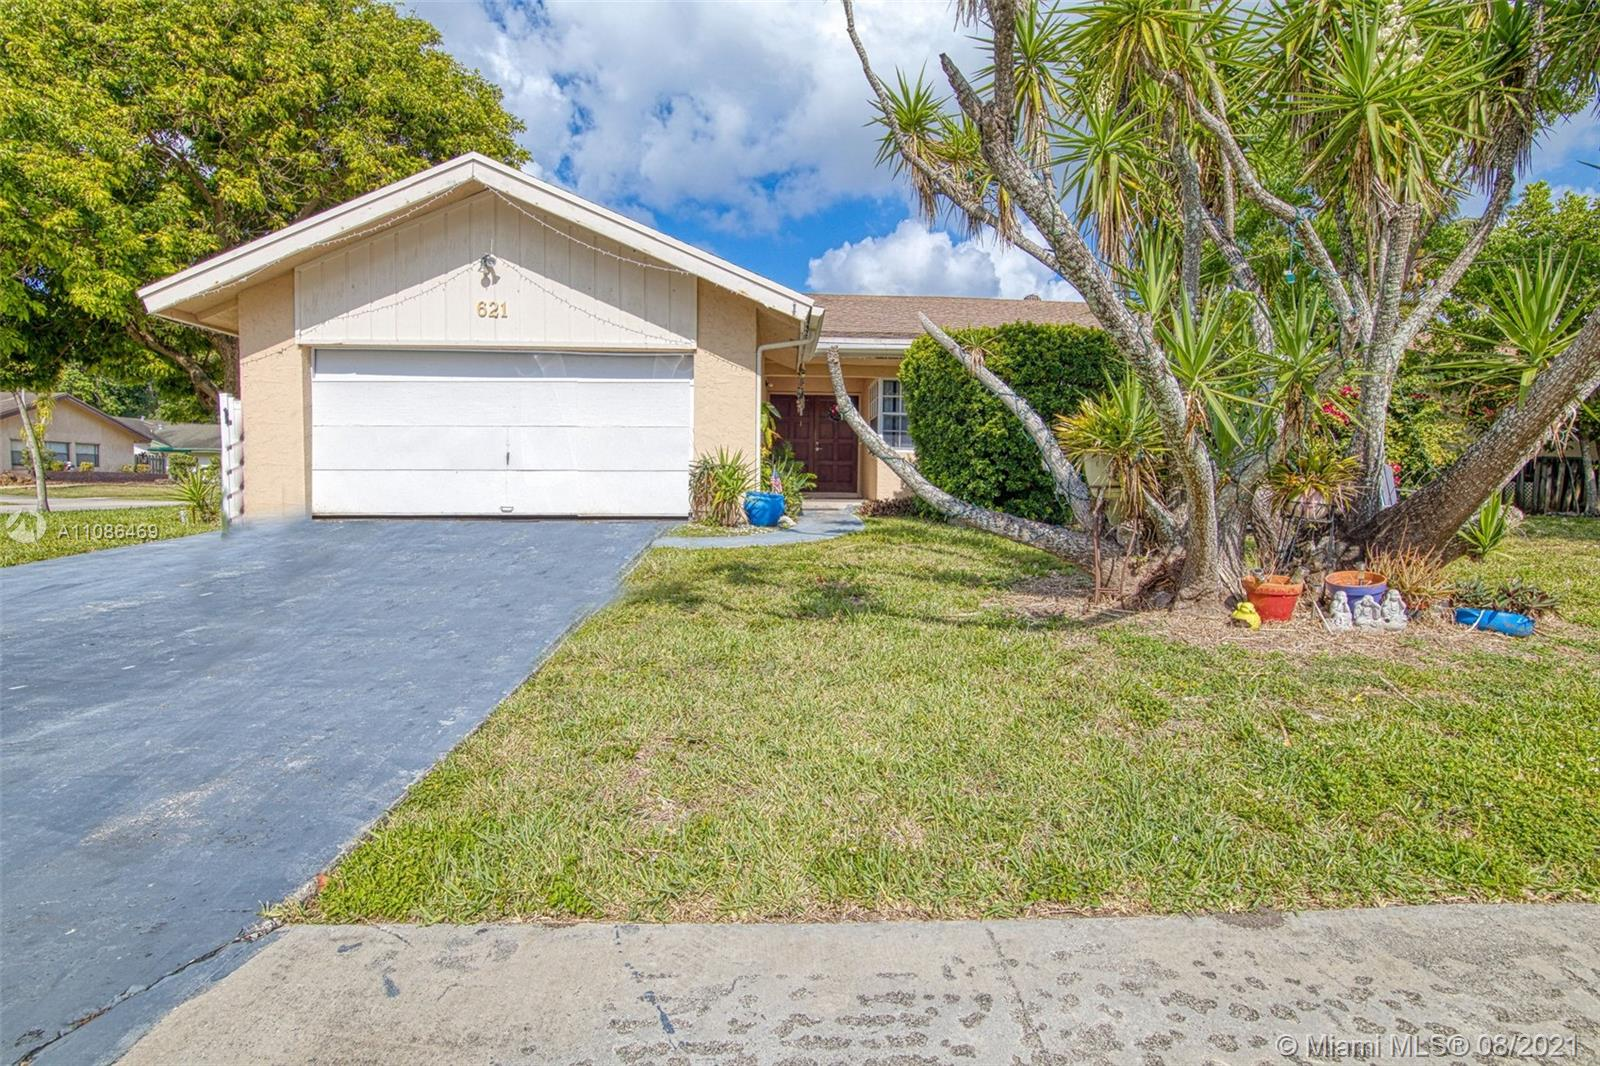 621 NW 48th Ave, Coconut Creek, Florida 33063